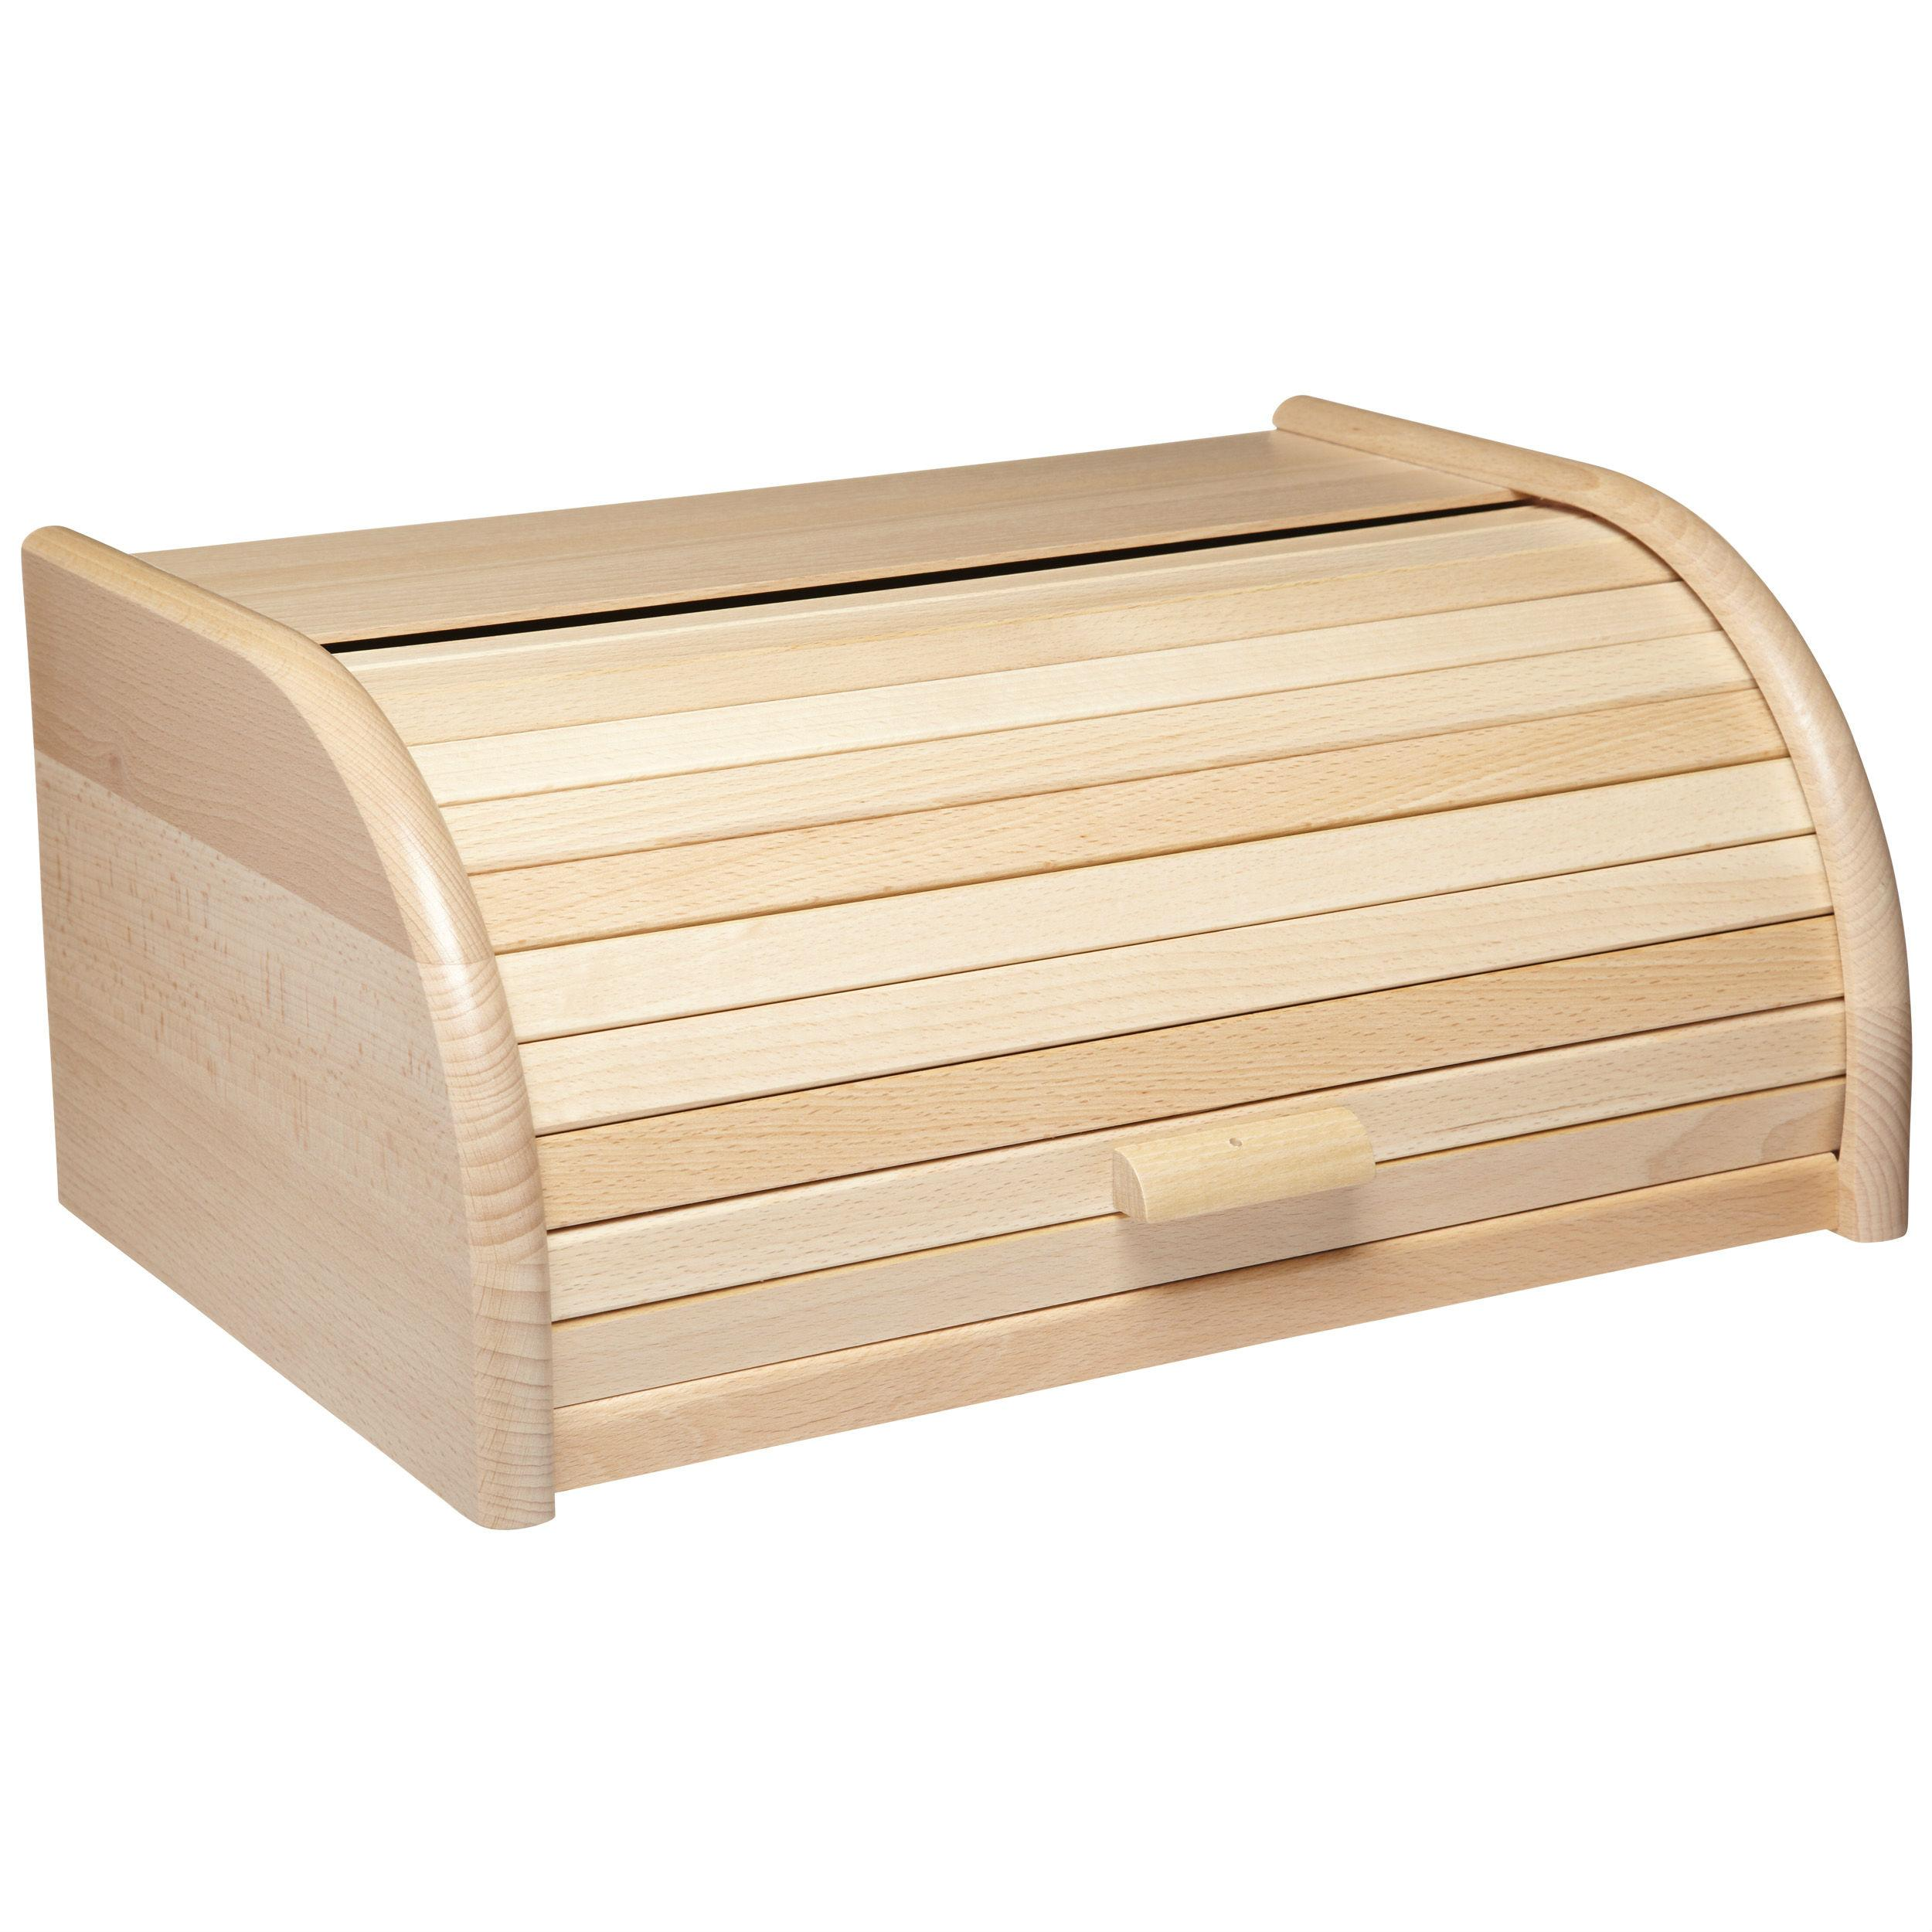 How Decorate Home Kitchencraft Roll Top Wooden Bread Bin 40 X 28 X 18 Cm